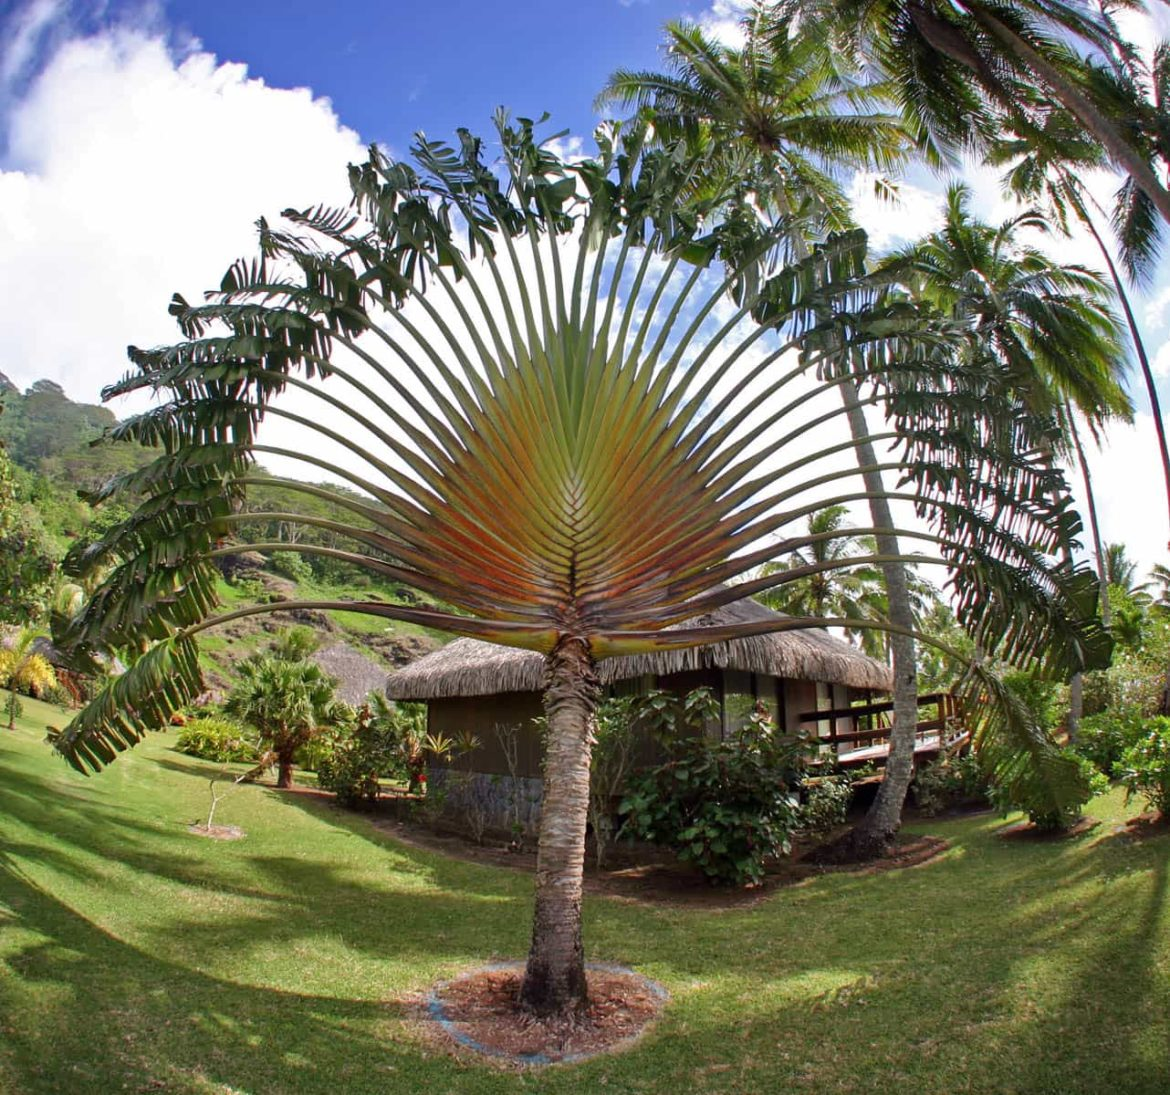 Beautiful paln trees surrounding a thatch roof cabin in French Polynesia